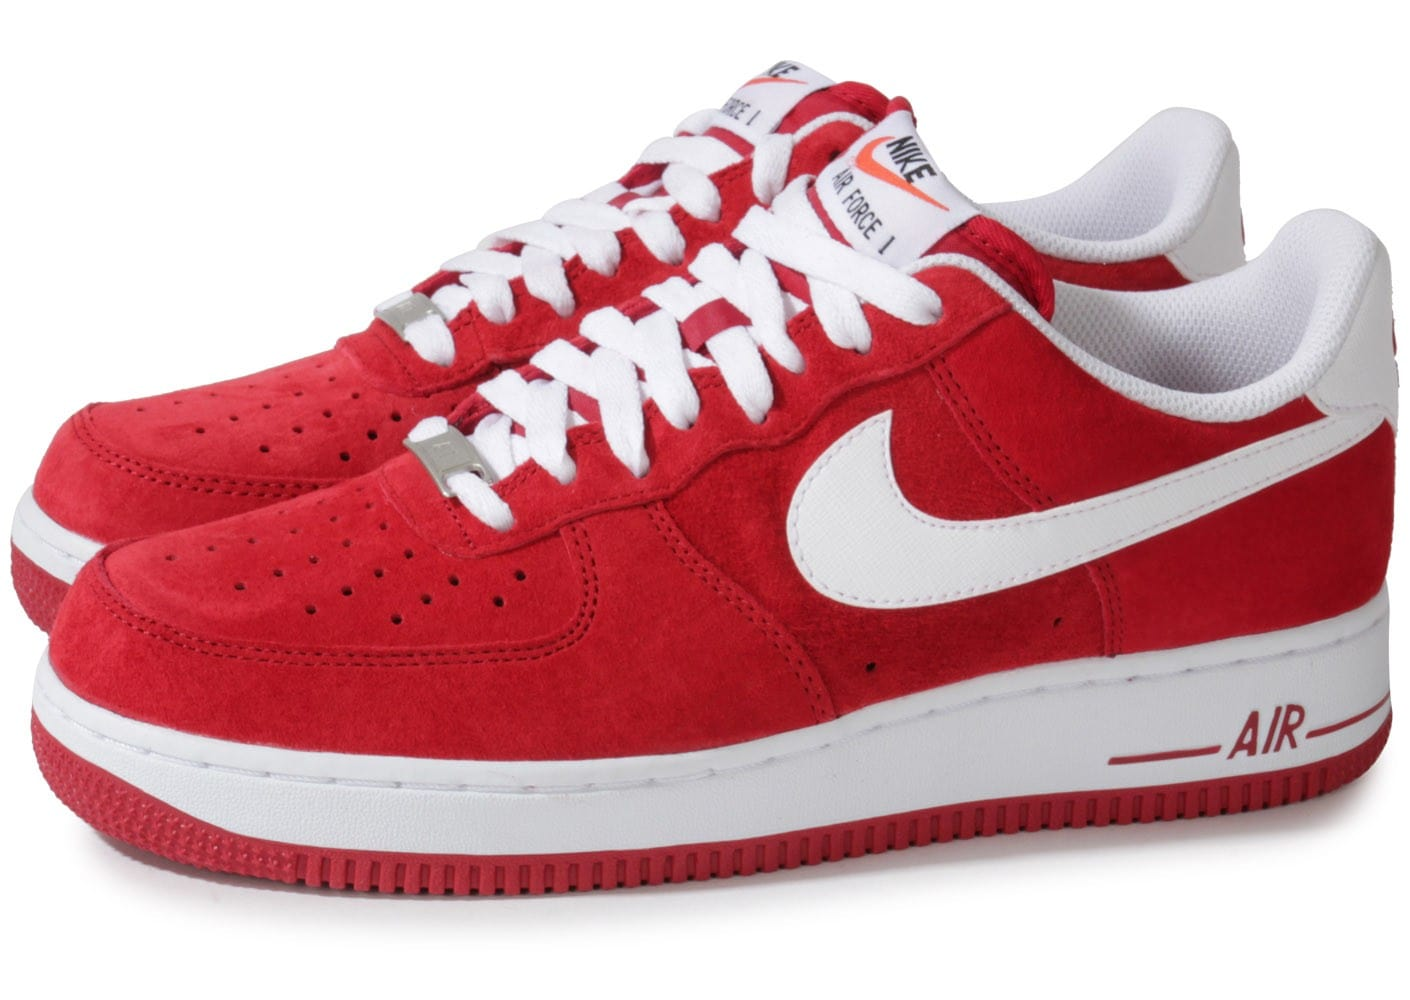 nike air force 1 suede rouge chaussures homme chausport. Black Bedroom Furniture Sets. Home Design Ideas